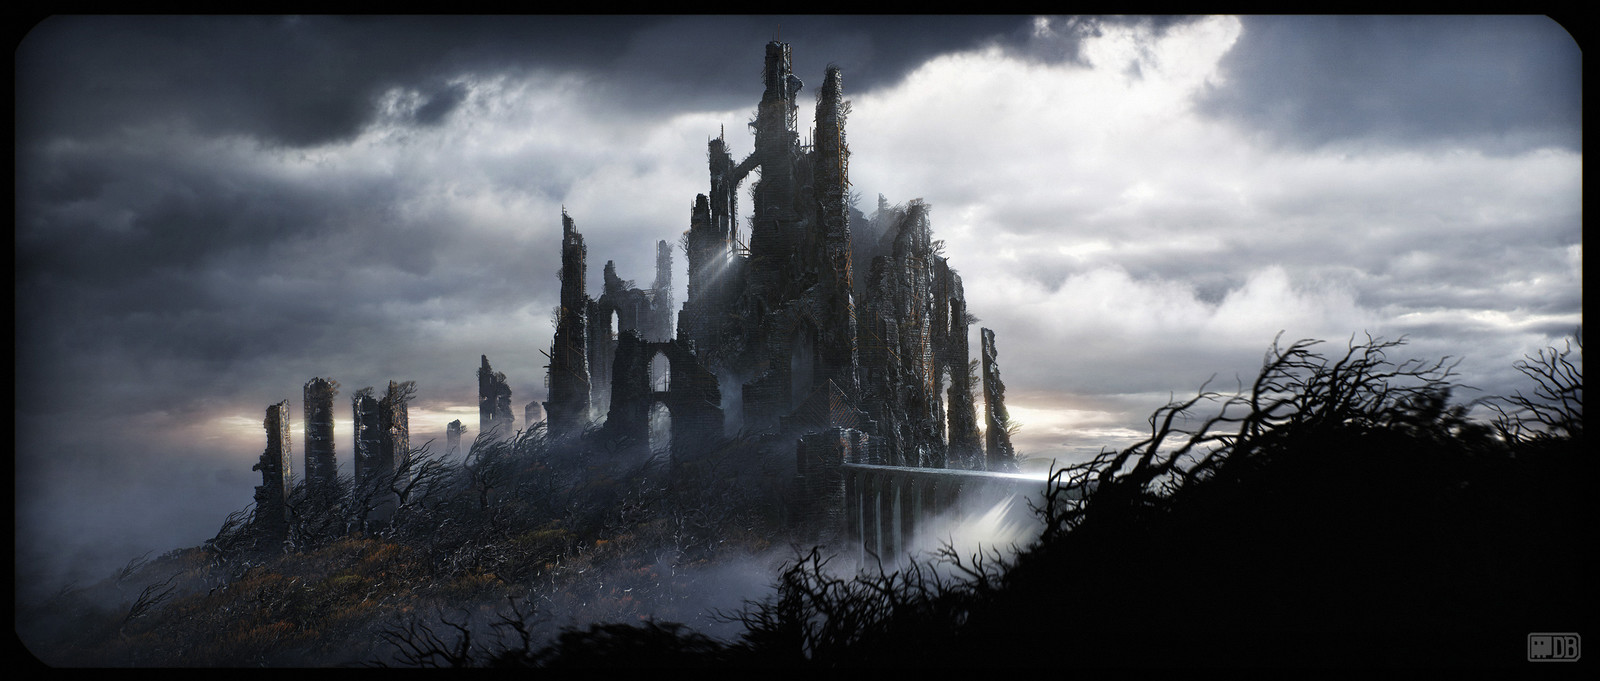 The Hobbit Trilogy / Dol Guldur